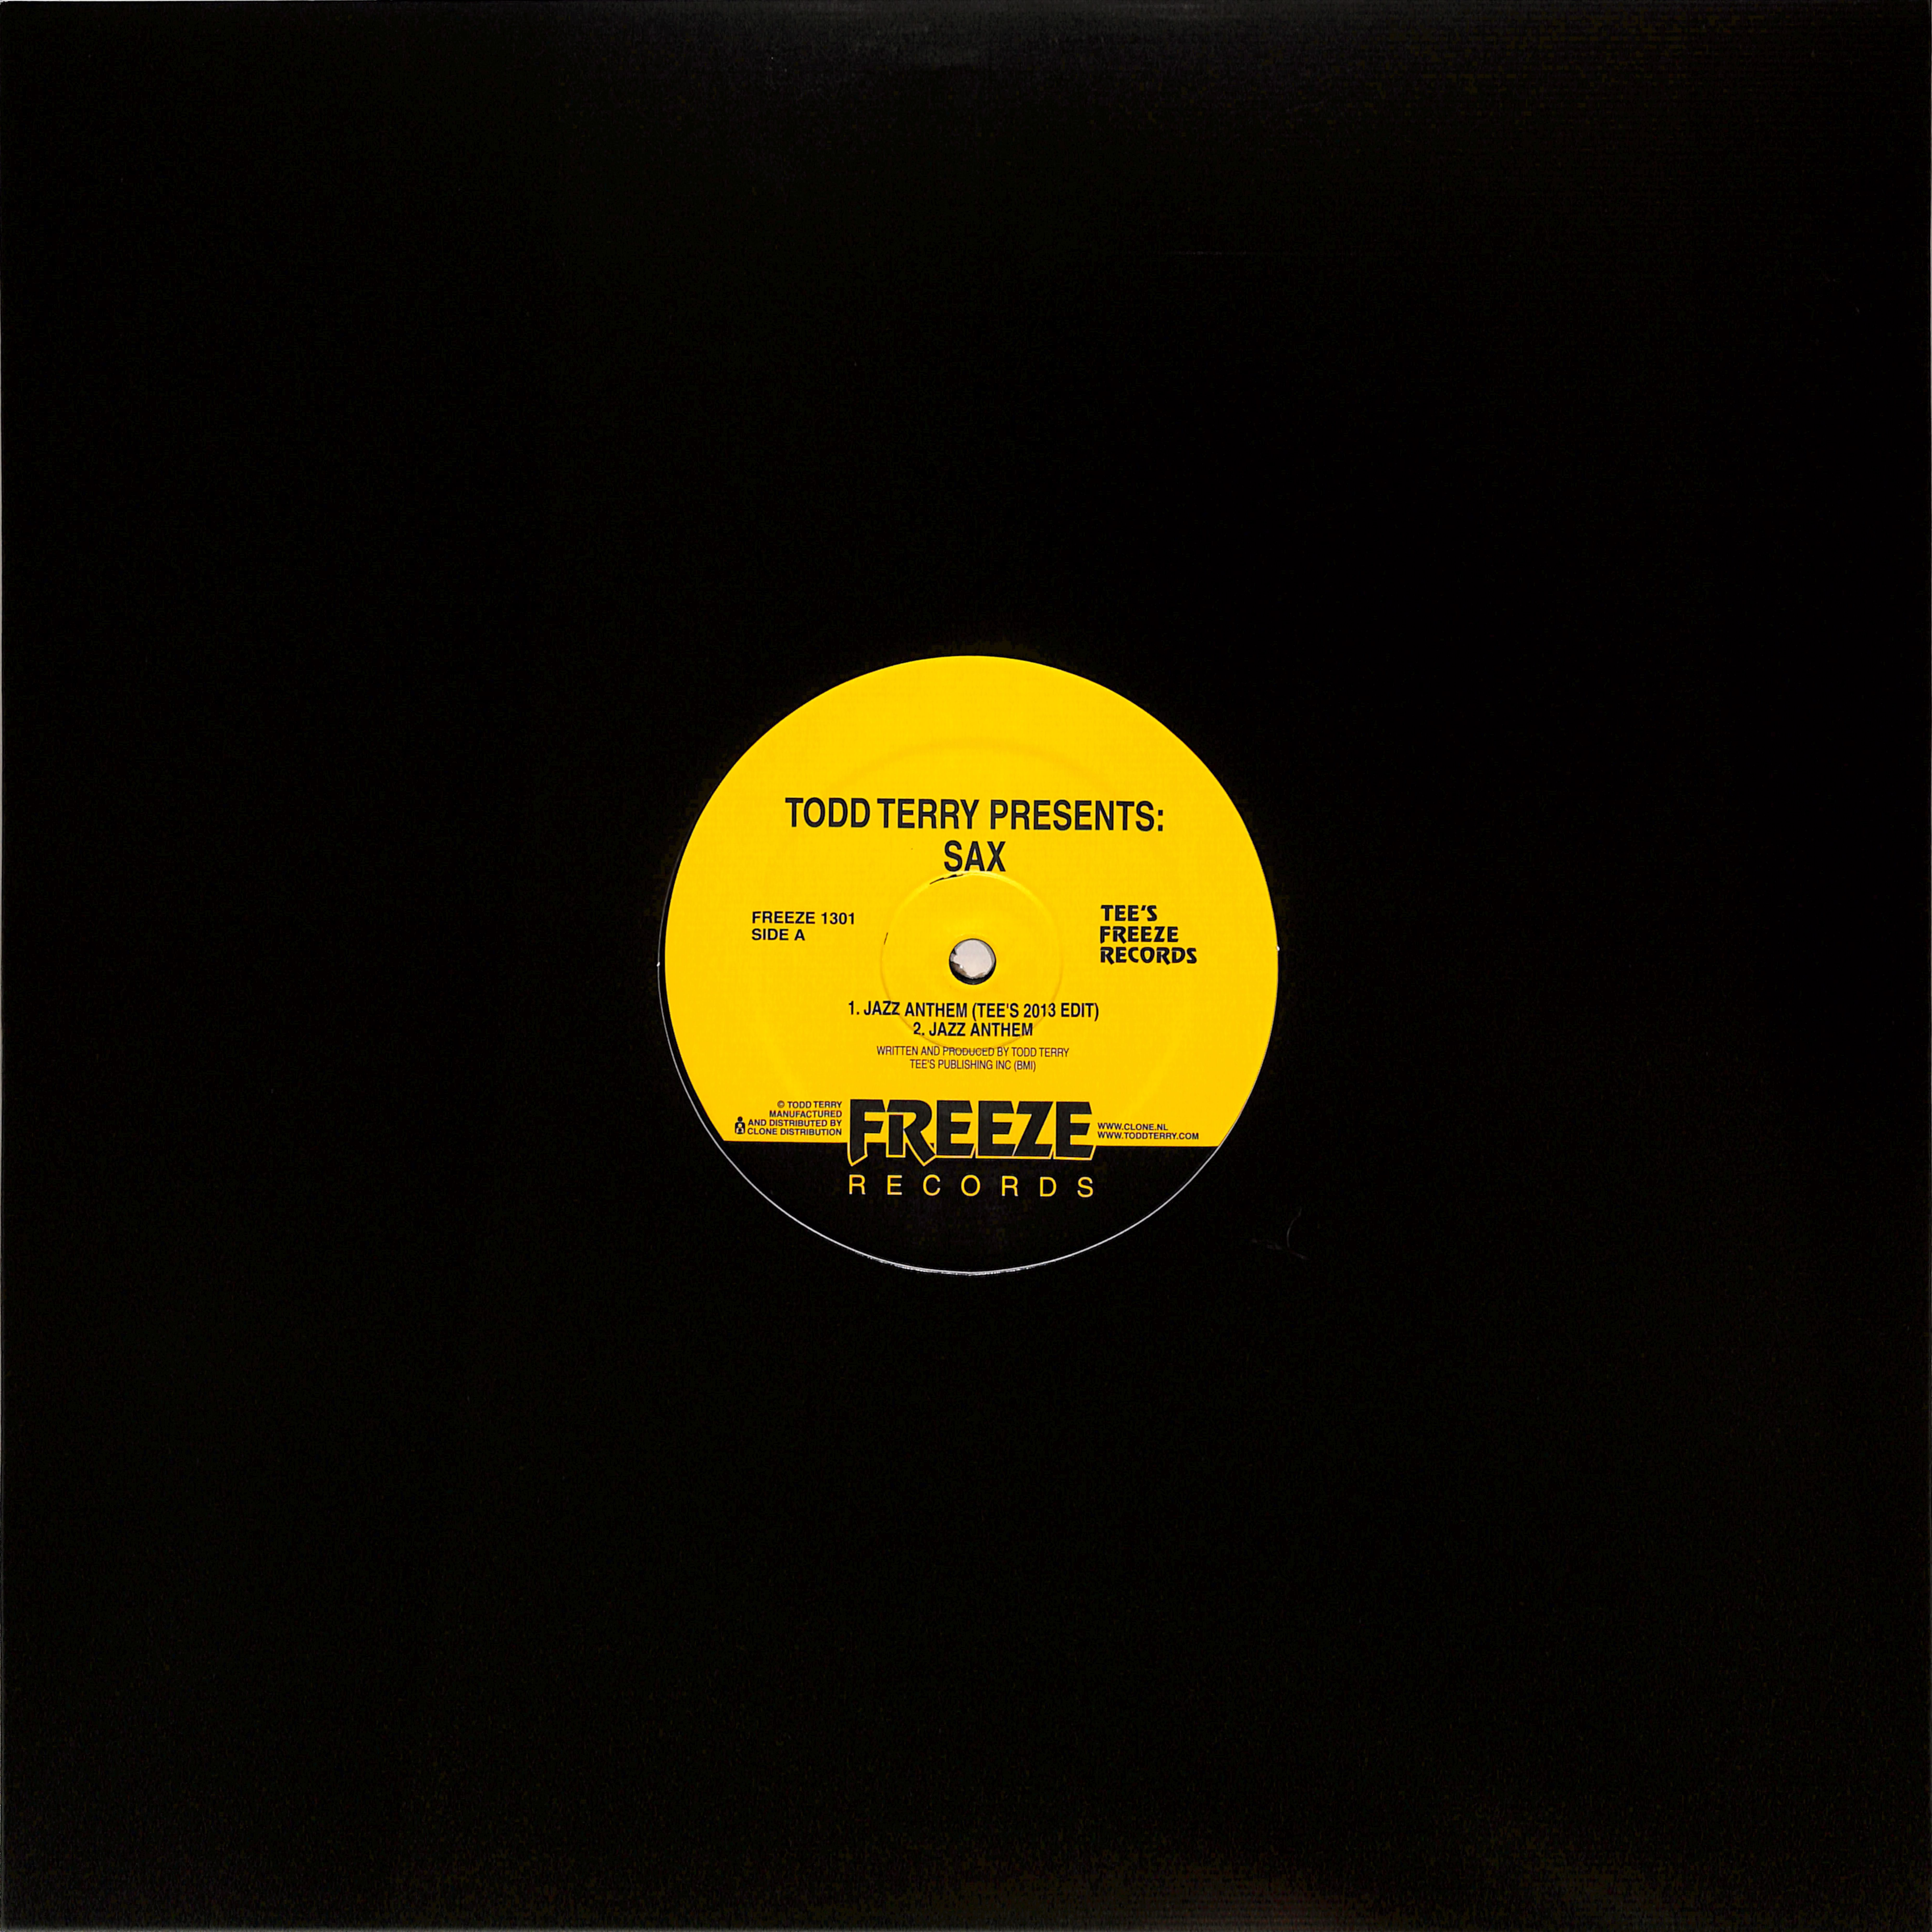 Todd Terry - TODD TERRY PRESENTS SAX